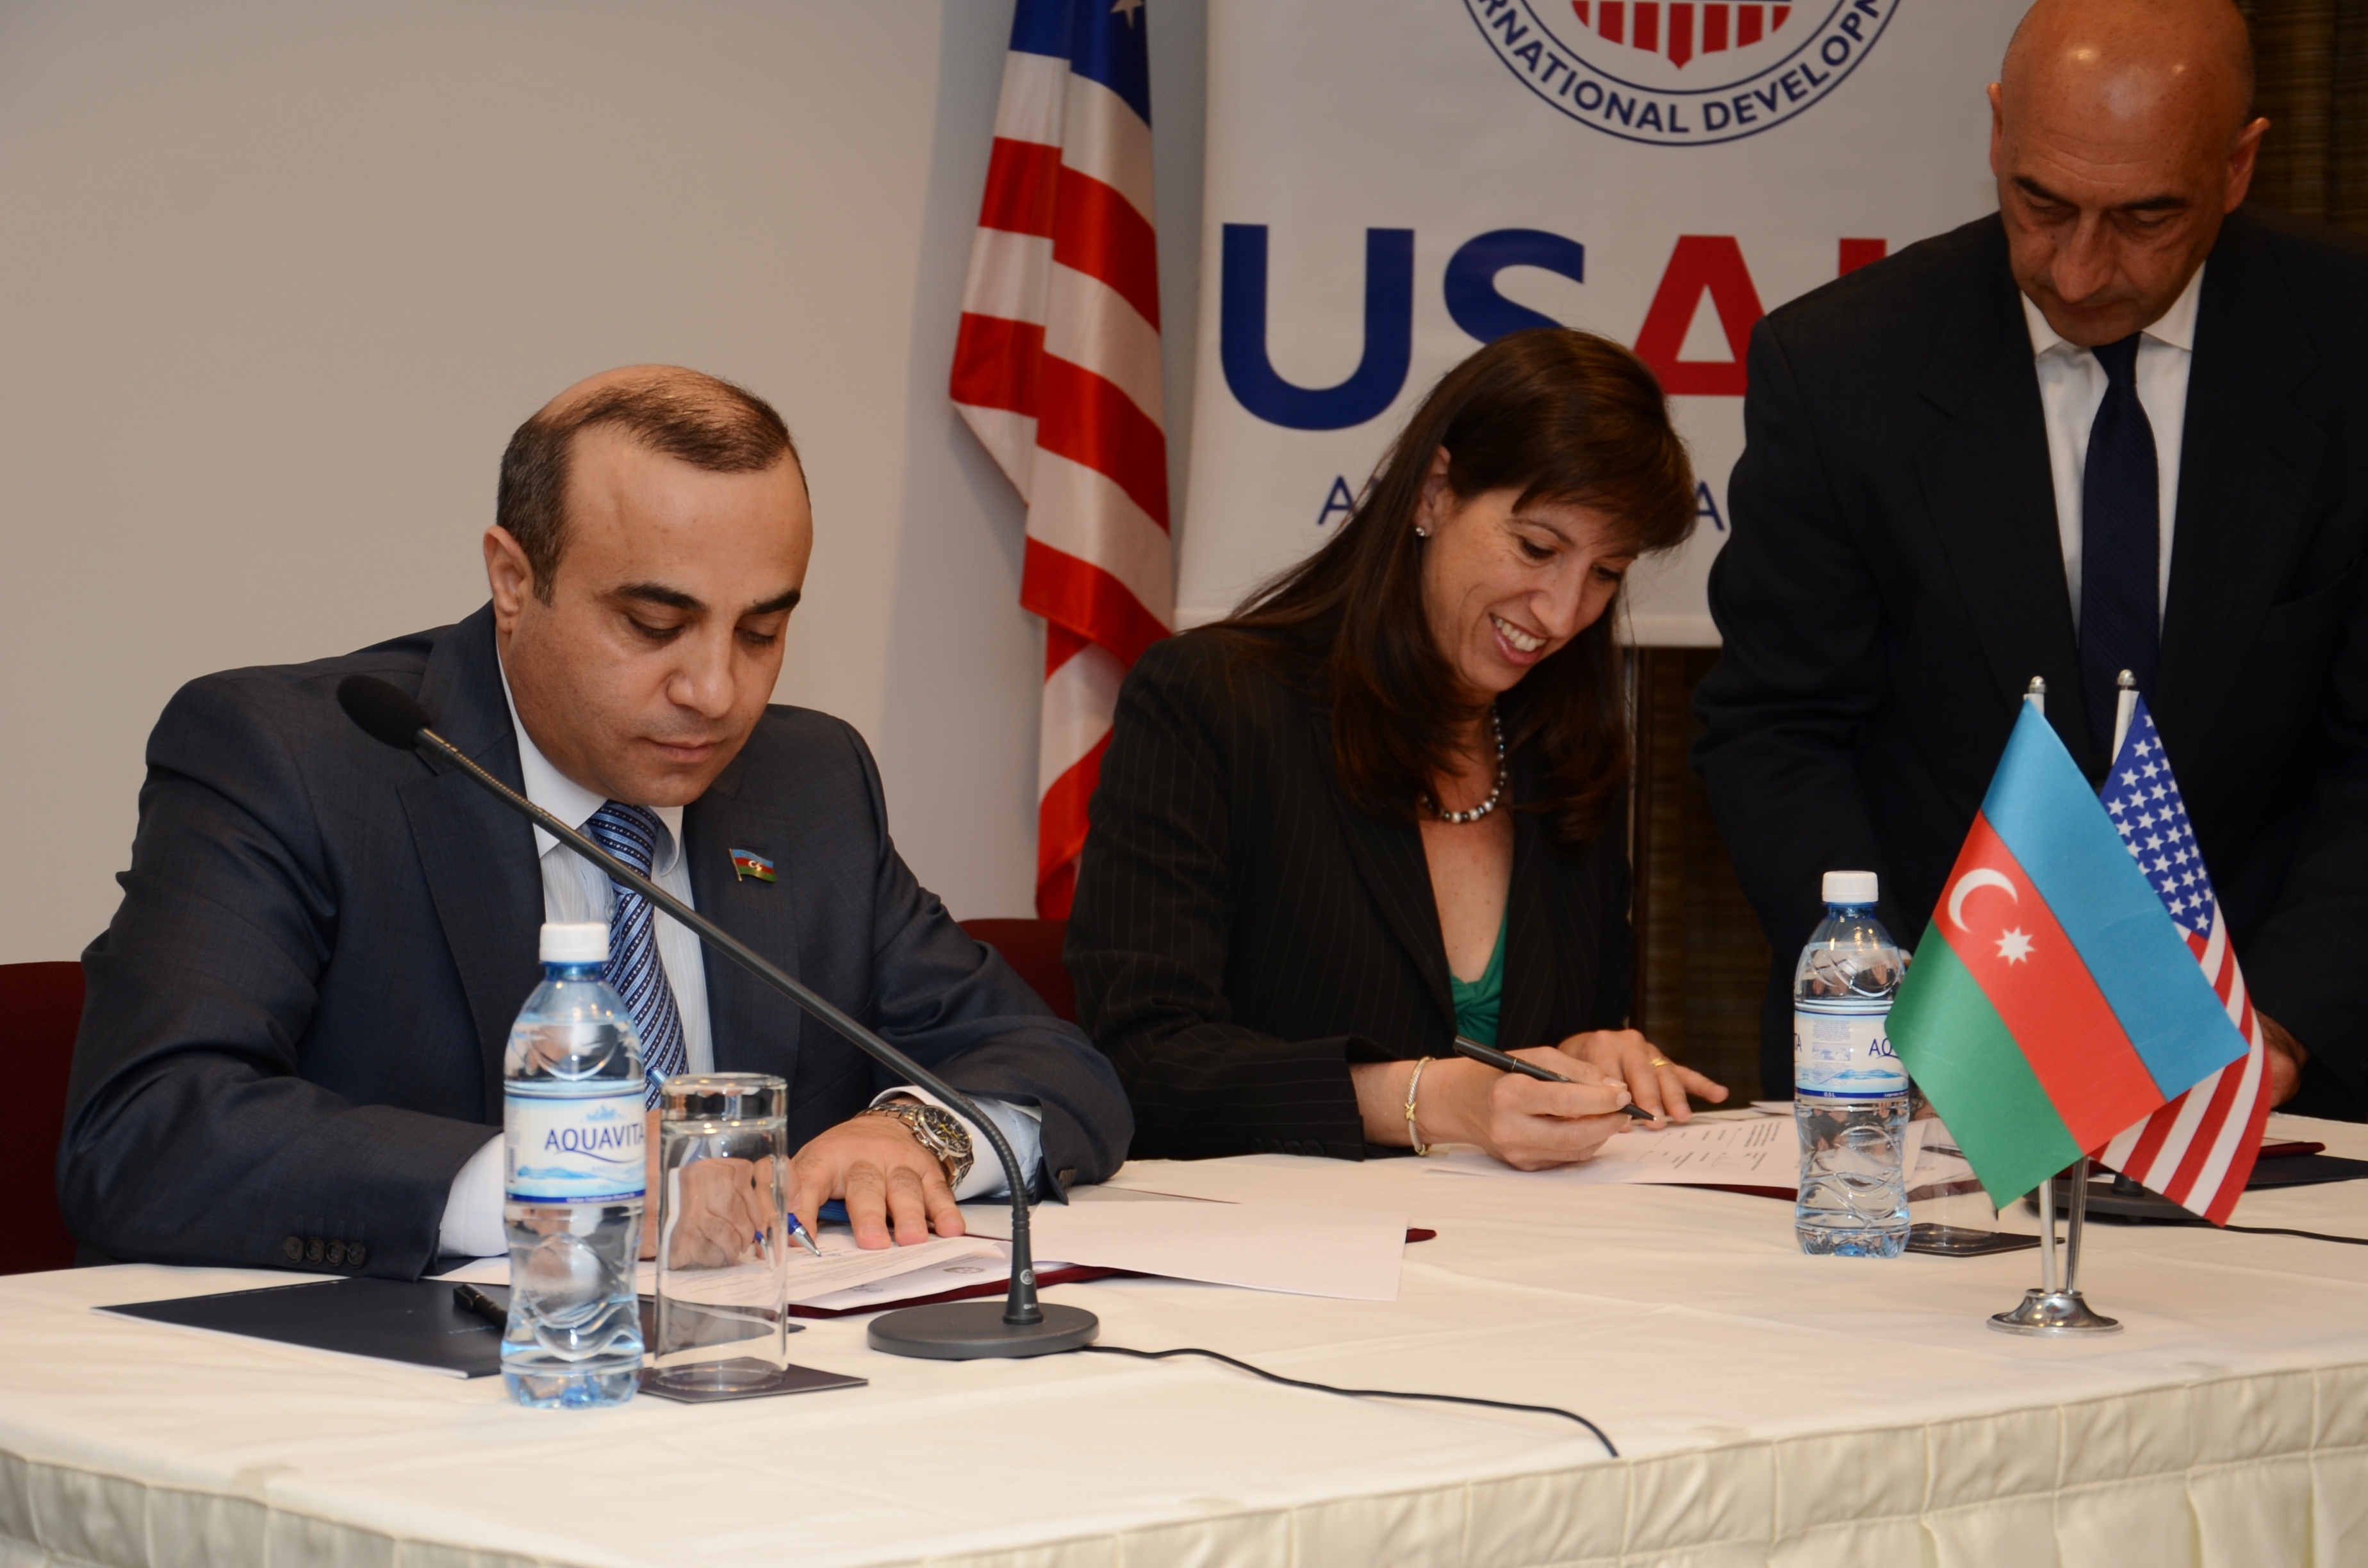 USAID and NGO Council sign the memorandum of understanding